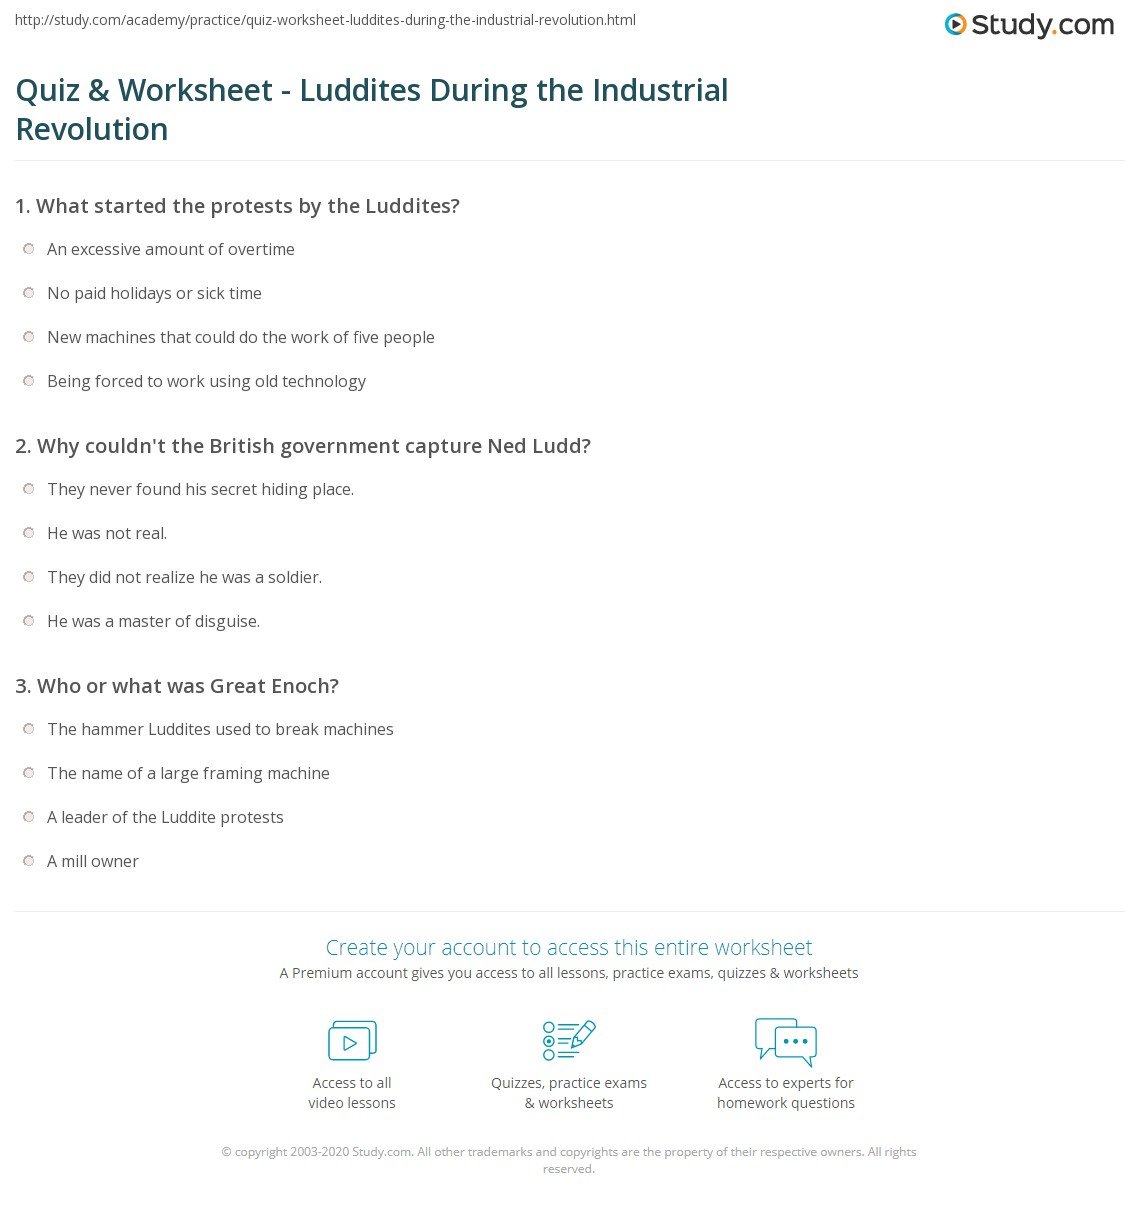 Quiz Worksheet Luddites During The Industrial